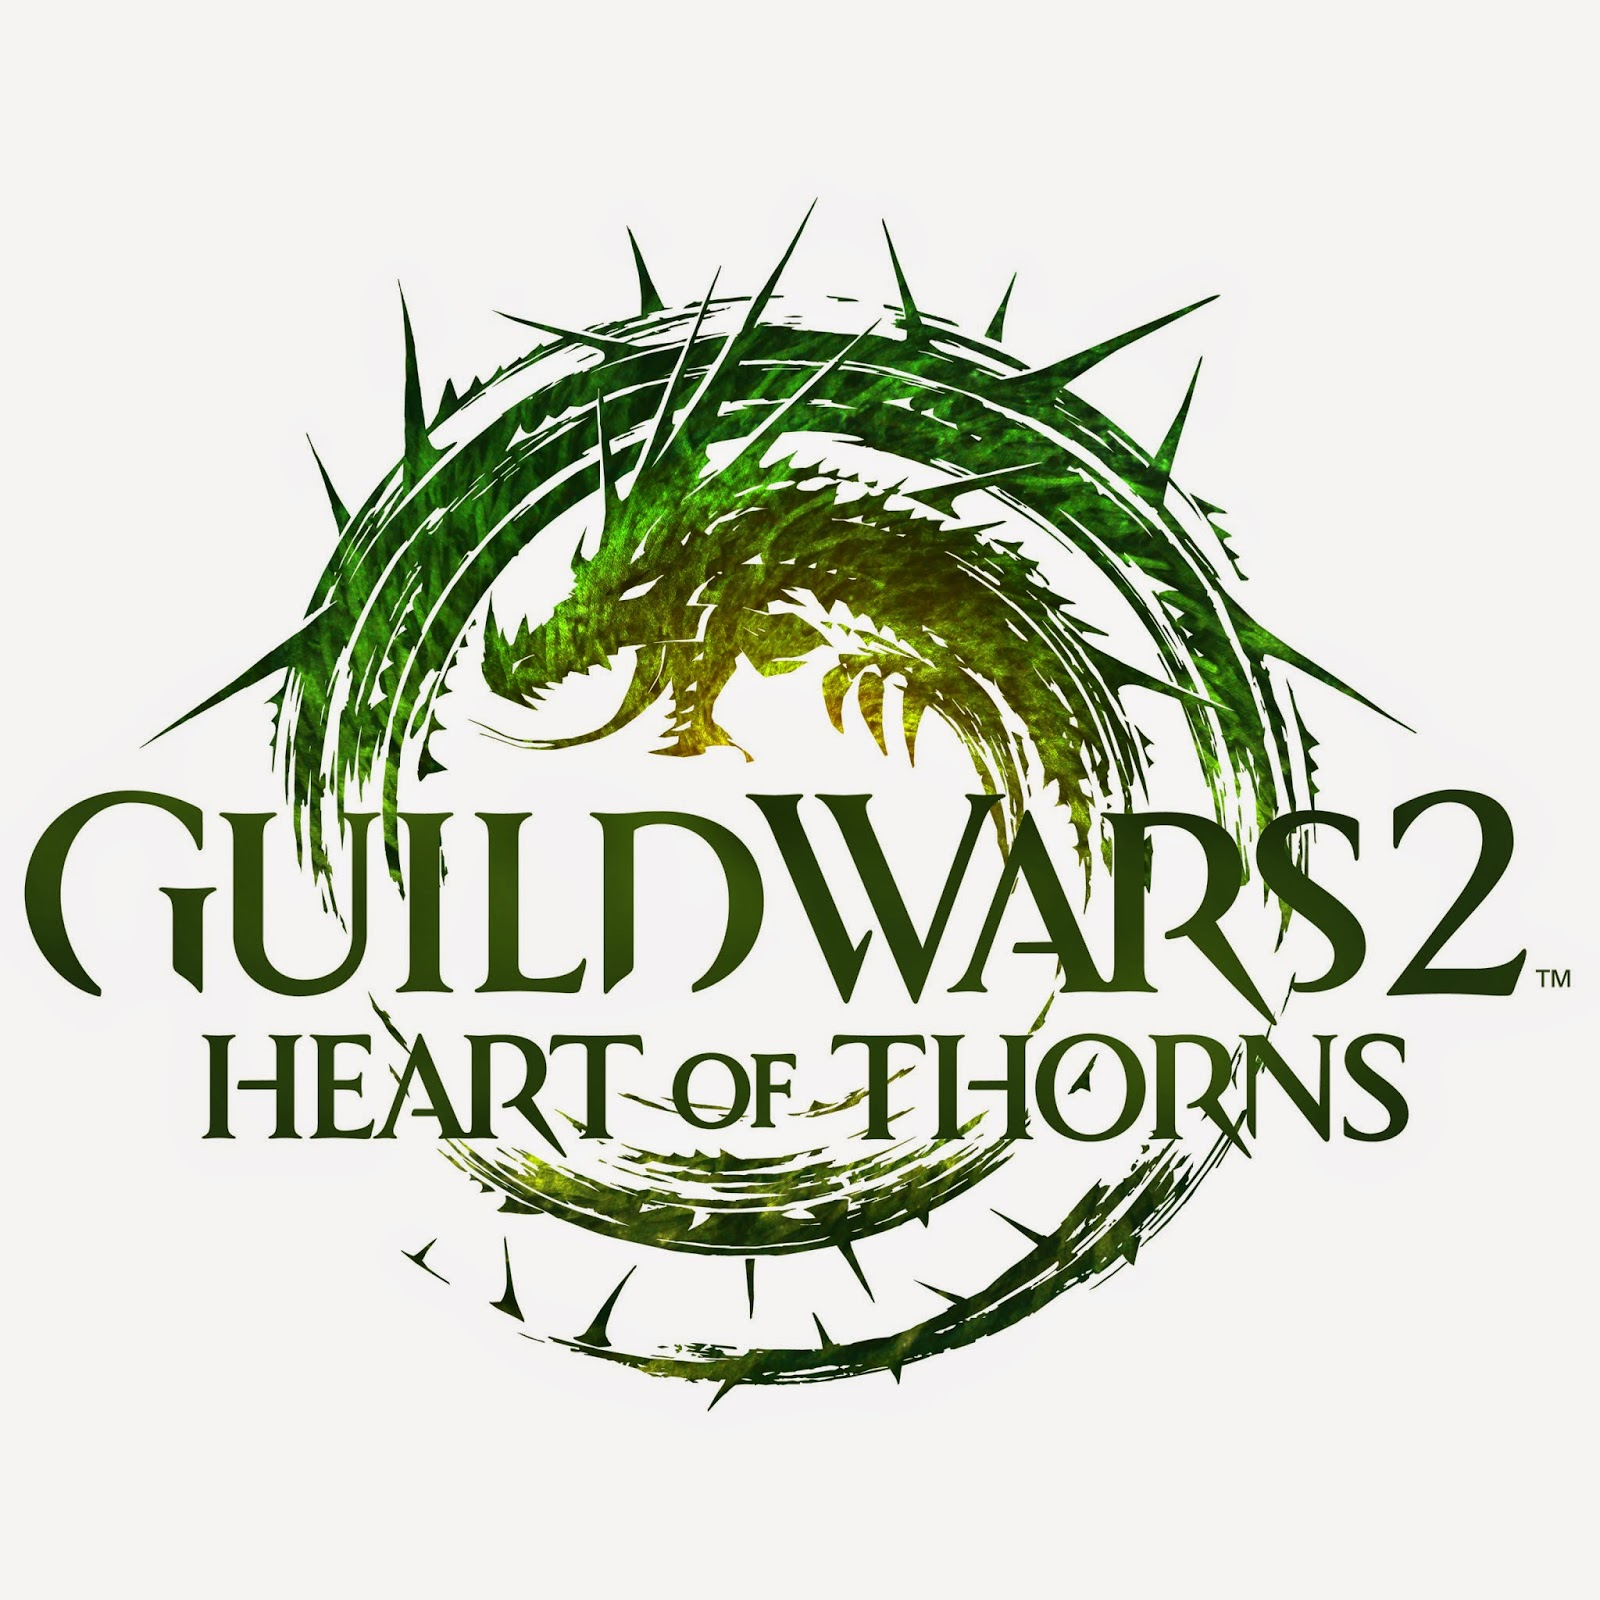 Guild Wars 2 Heart of Thorns GW2 ArenaNet